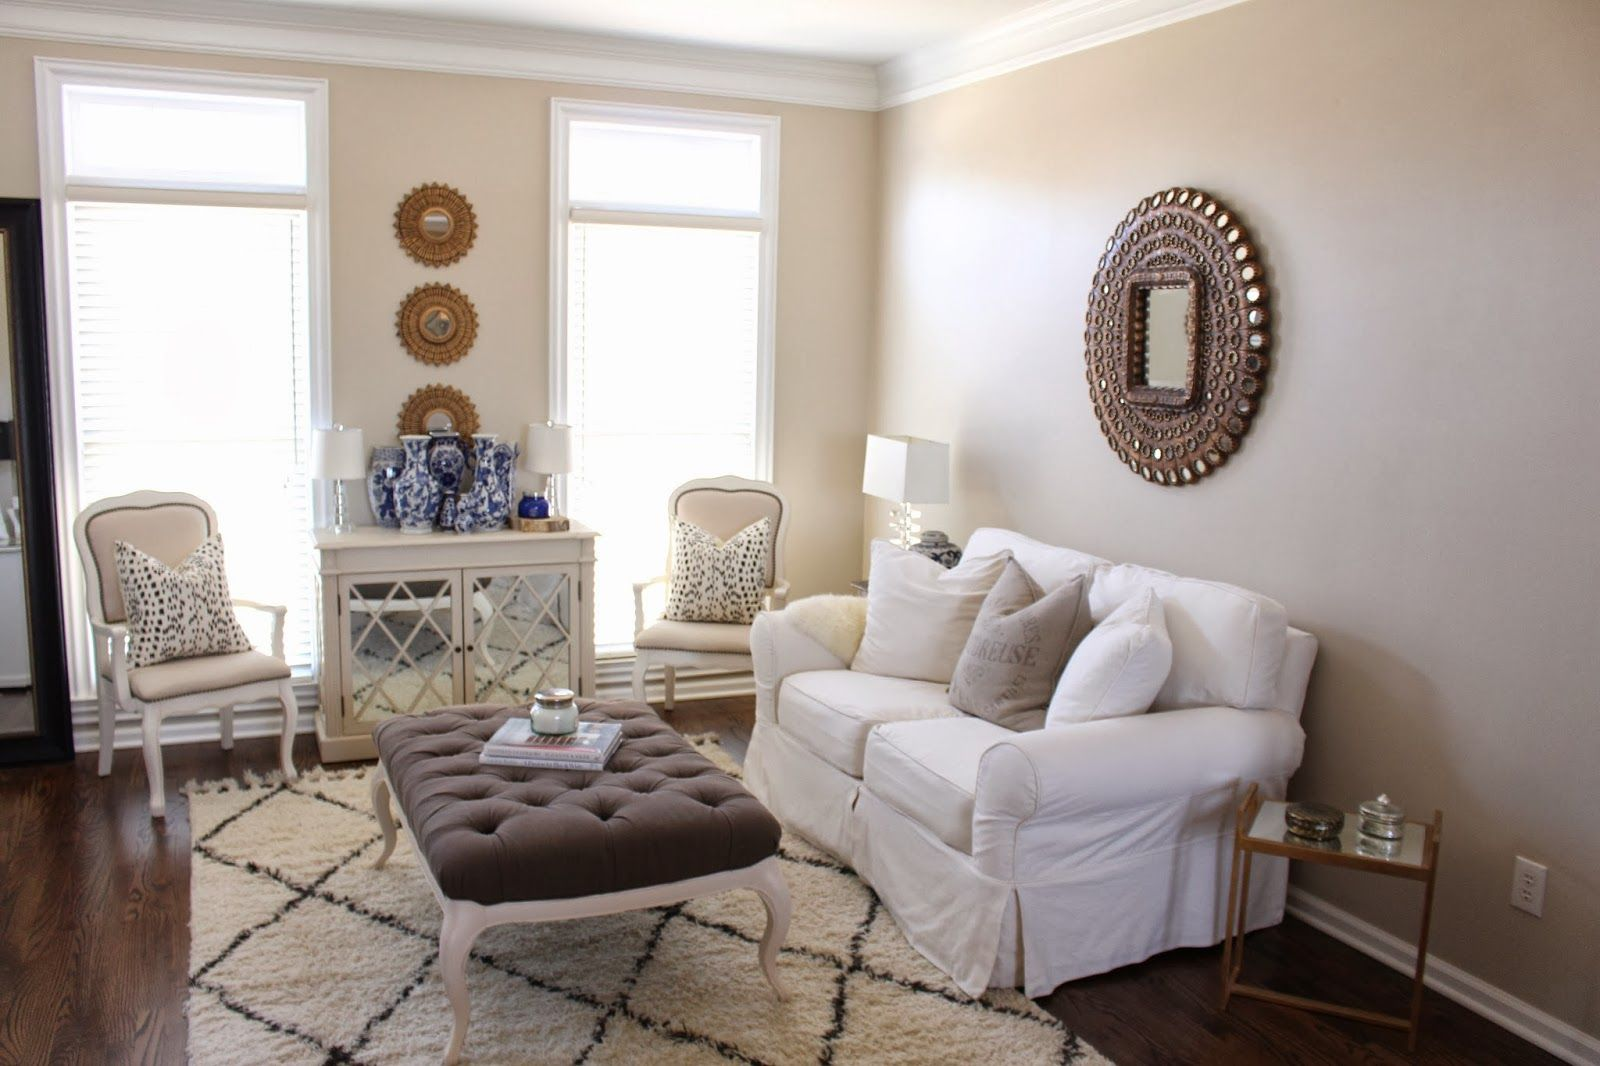 A Fresh Coat Of Paint In My Office Sitting Room Benjamin Moore Clay Beige Living Pinterest